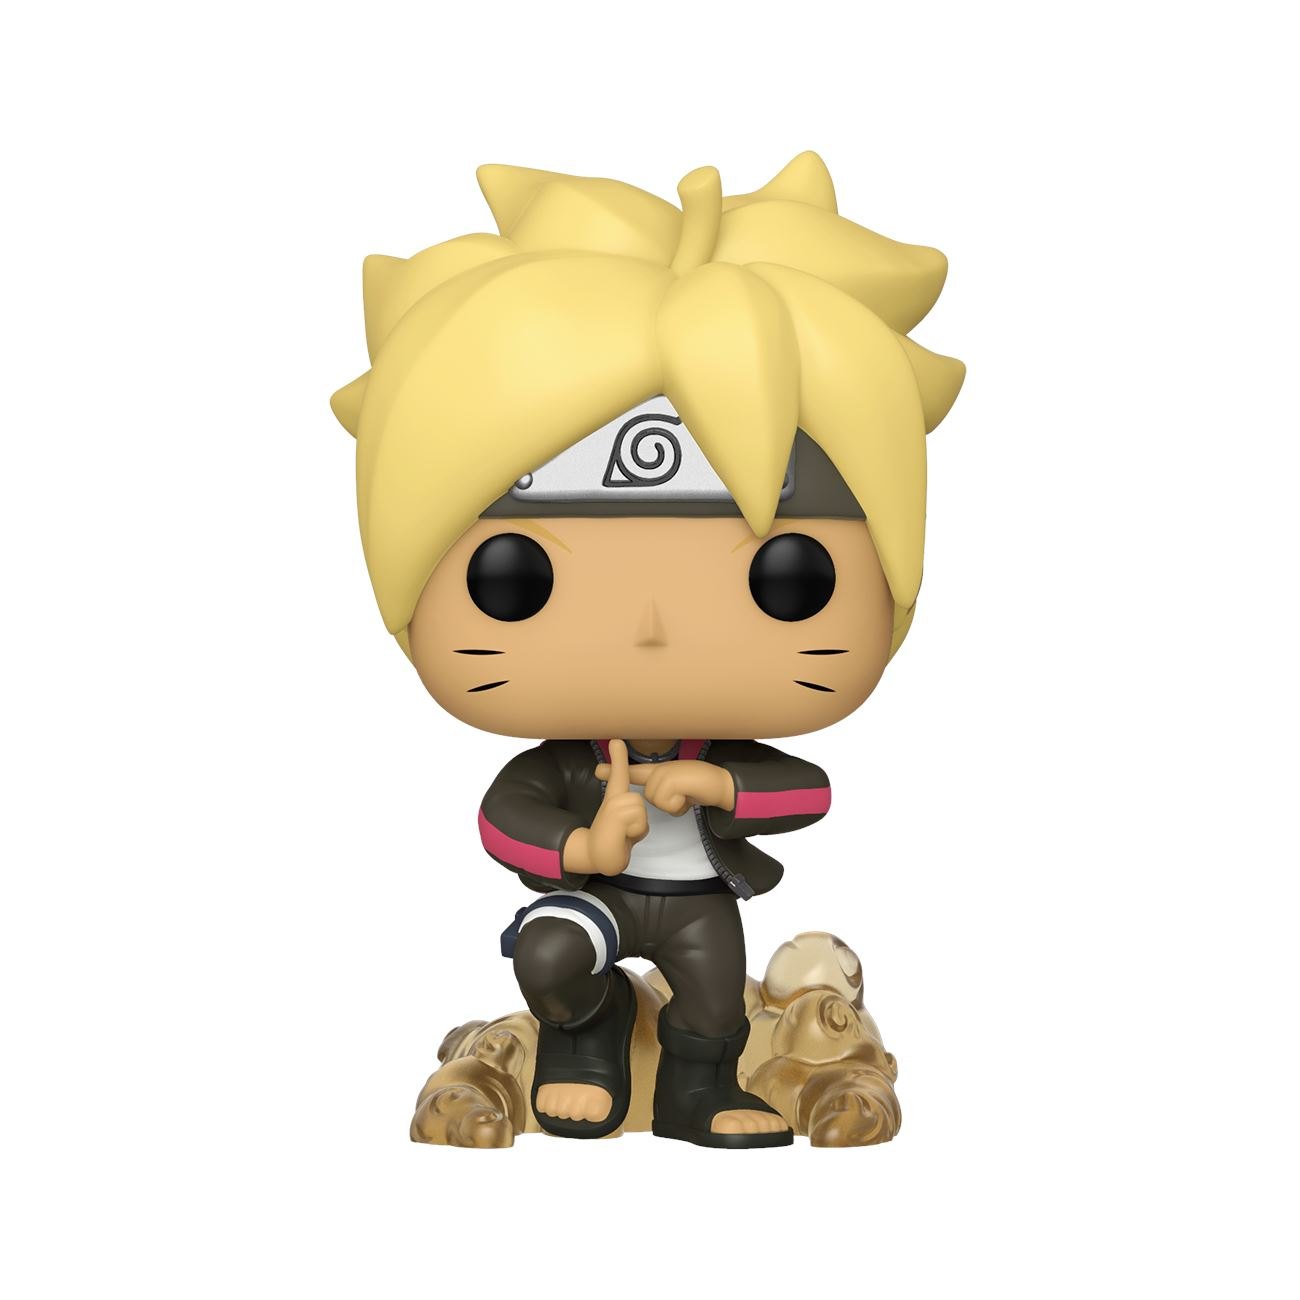 Boruto Uzumaki #671 Boruto Funko POP! Animation Pop! Funko